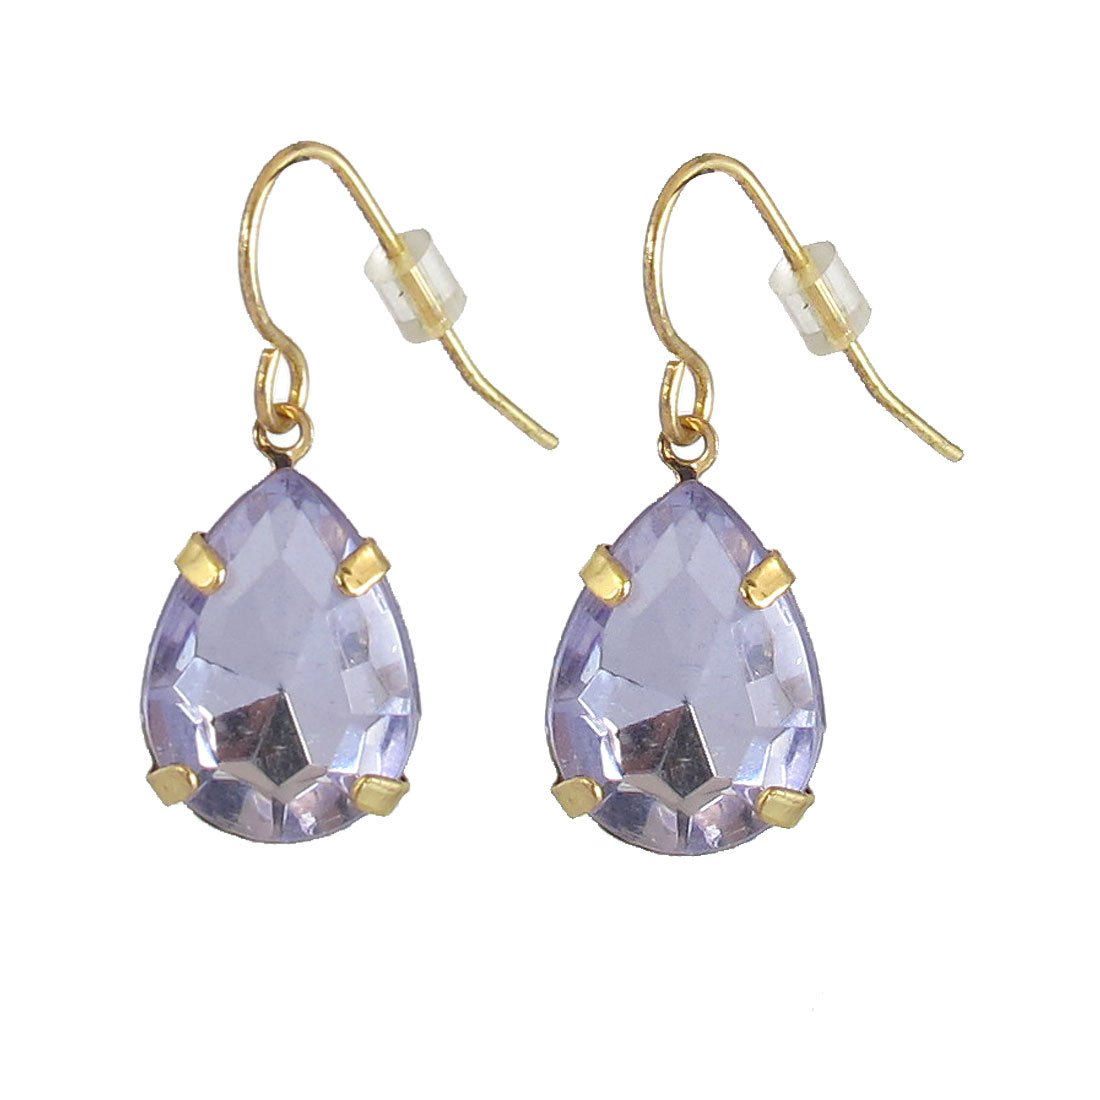 Lady Waterdrop Shape Faux Crystal Dangled Drop Hook Earrings Light Purple Pair